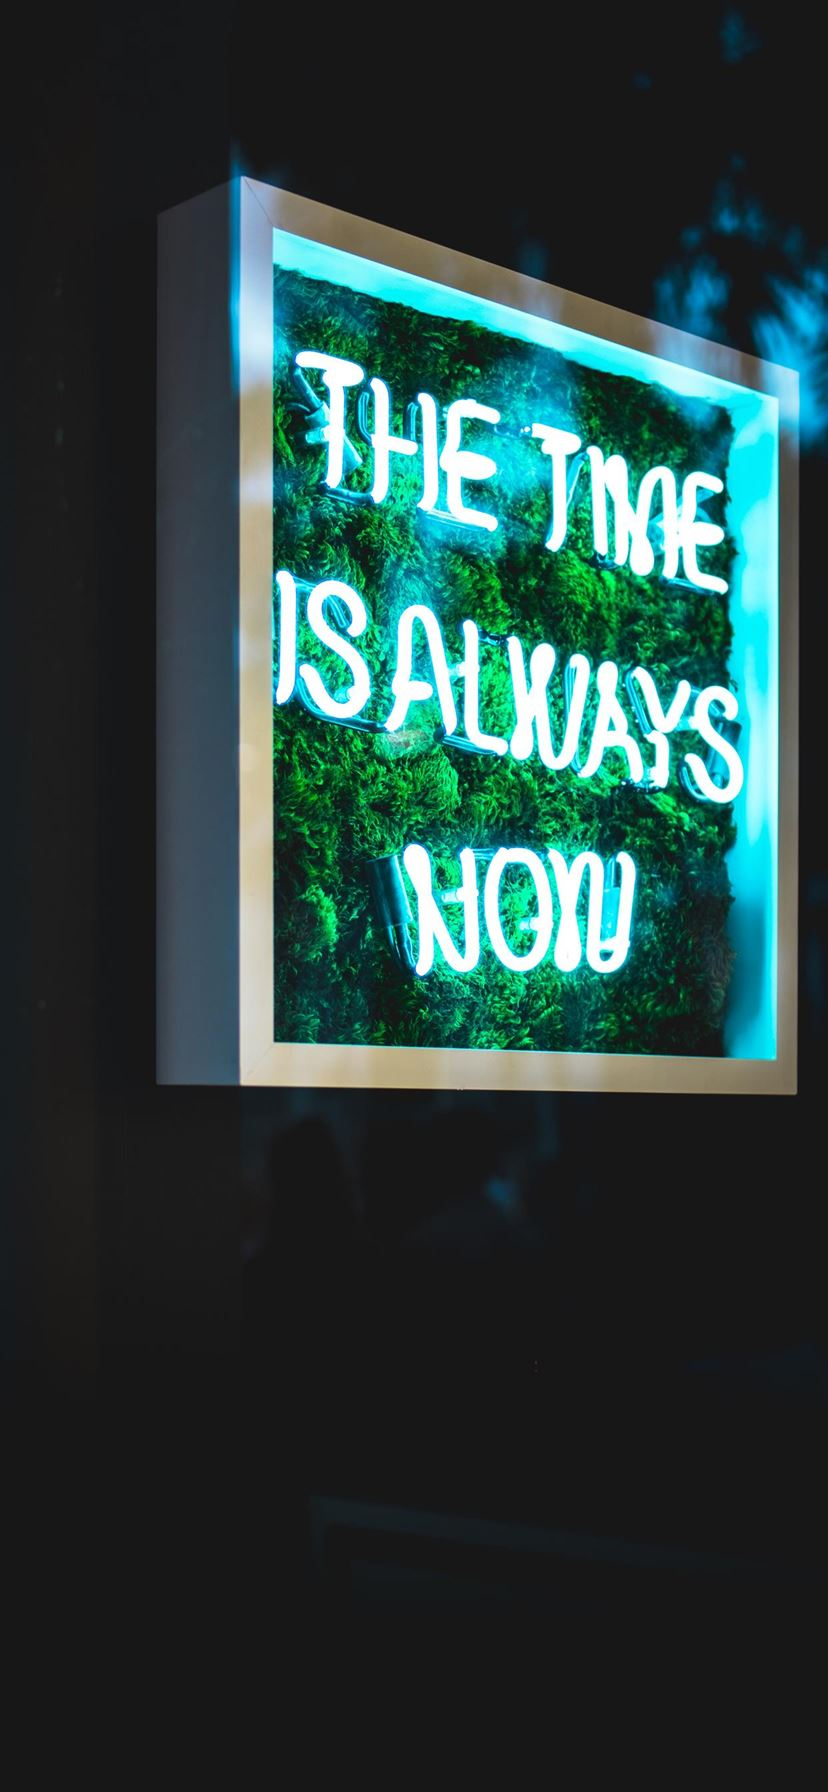 The Time Is Always Now Neon Light Signage Iphone Wallpapers